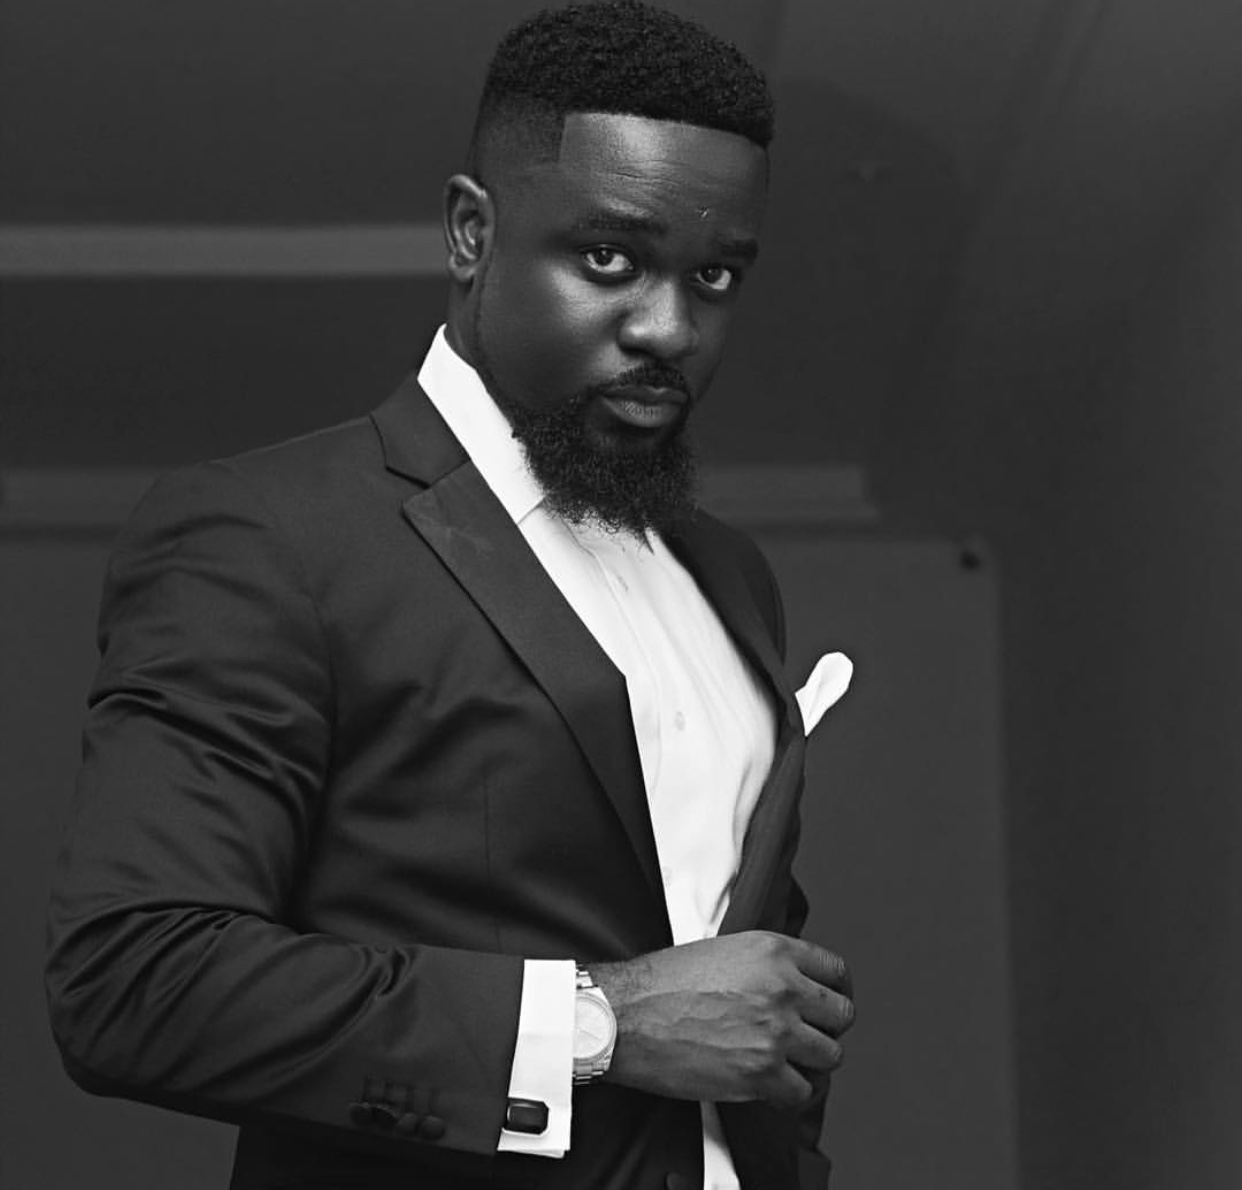 You are currently viewing LET'S PROJECT OUR CONTINENT AS AFRICAN ARTISTS – SARKODIE